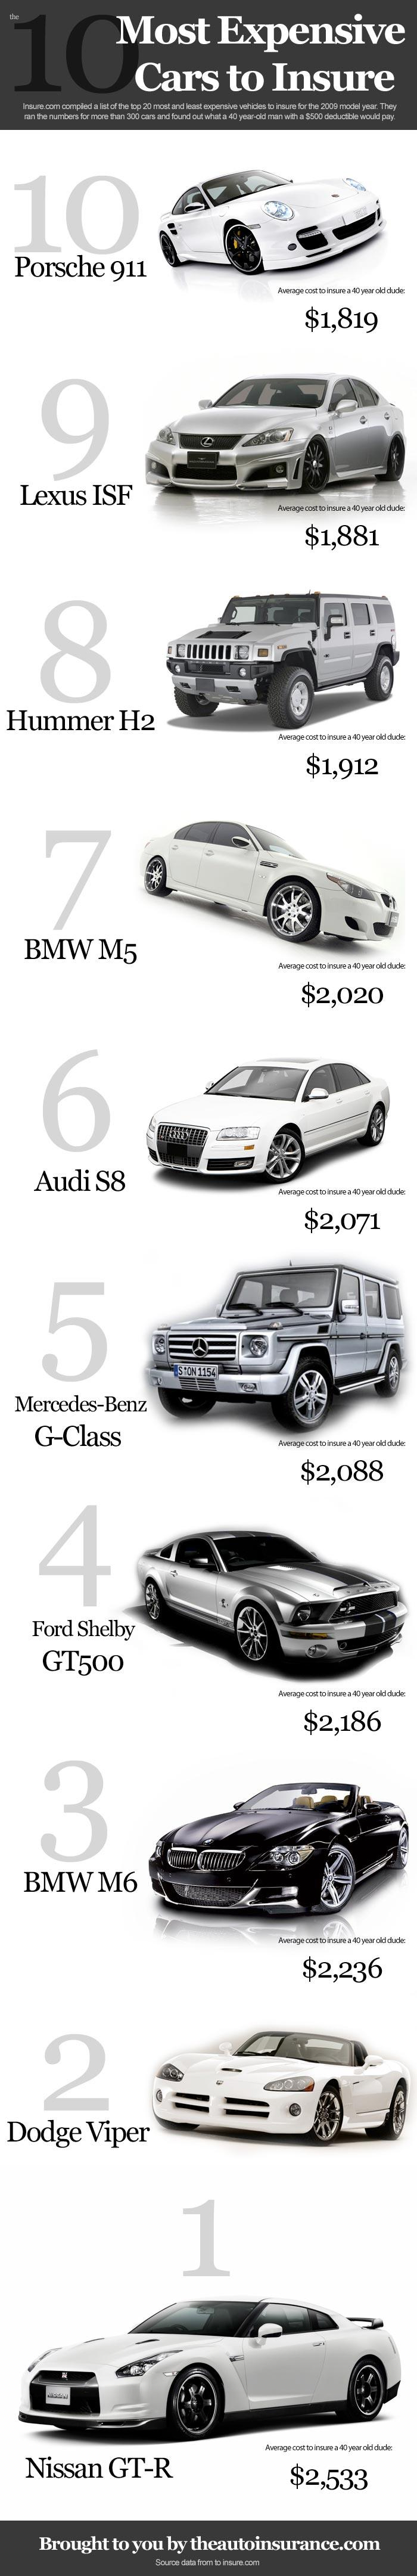 691 mostexpensivecars